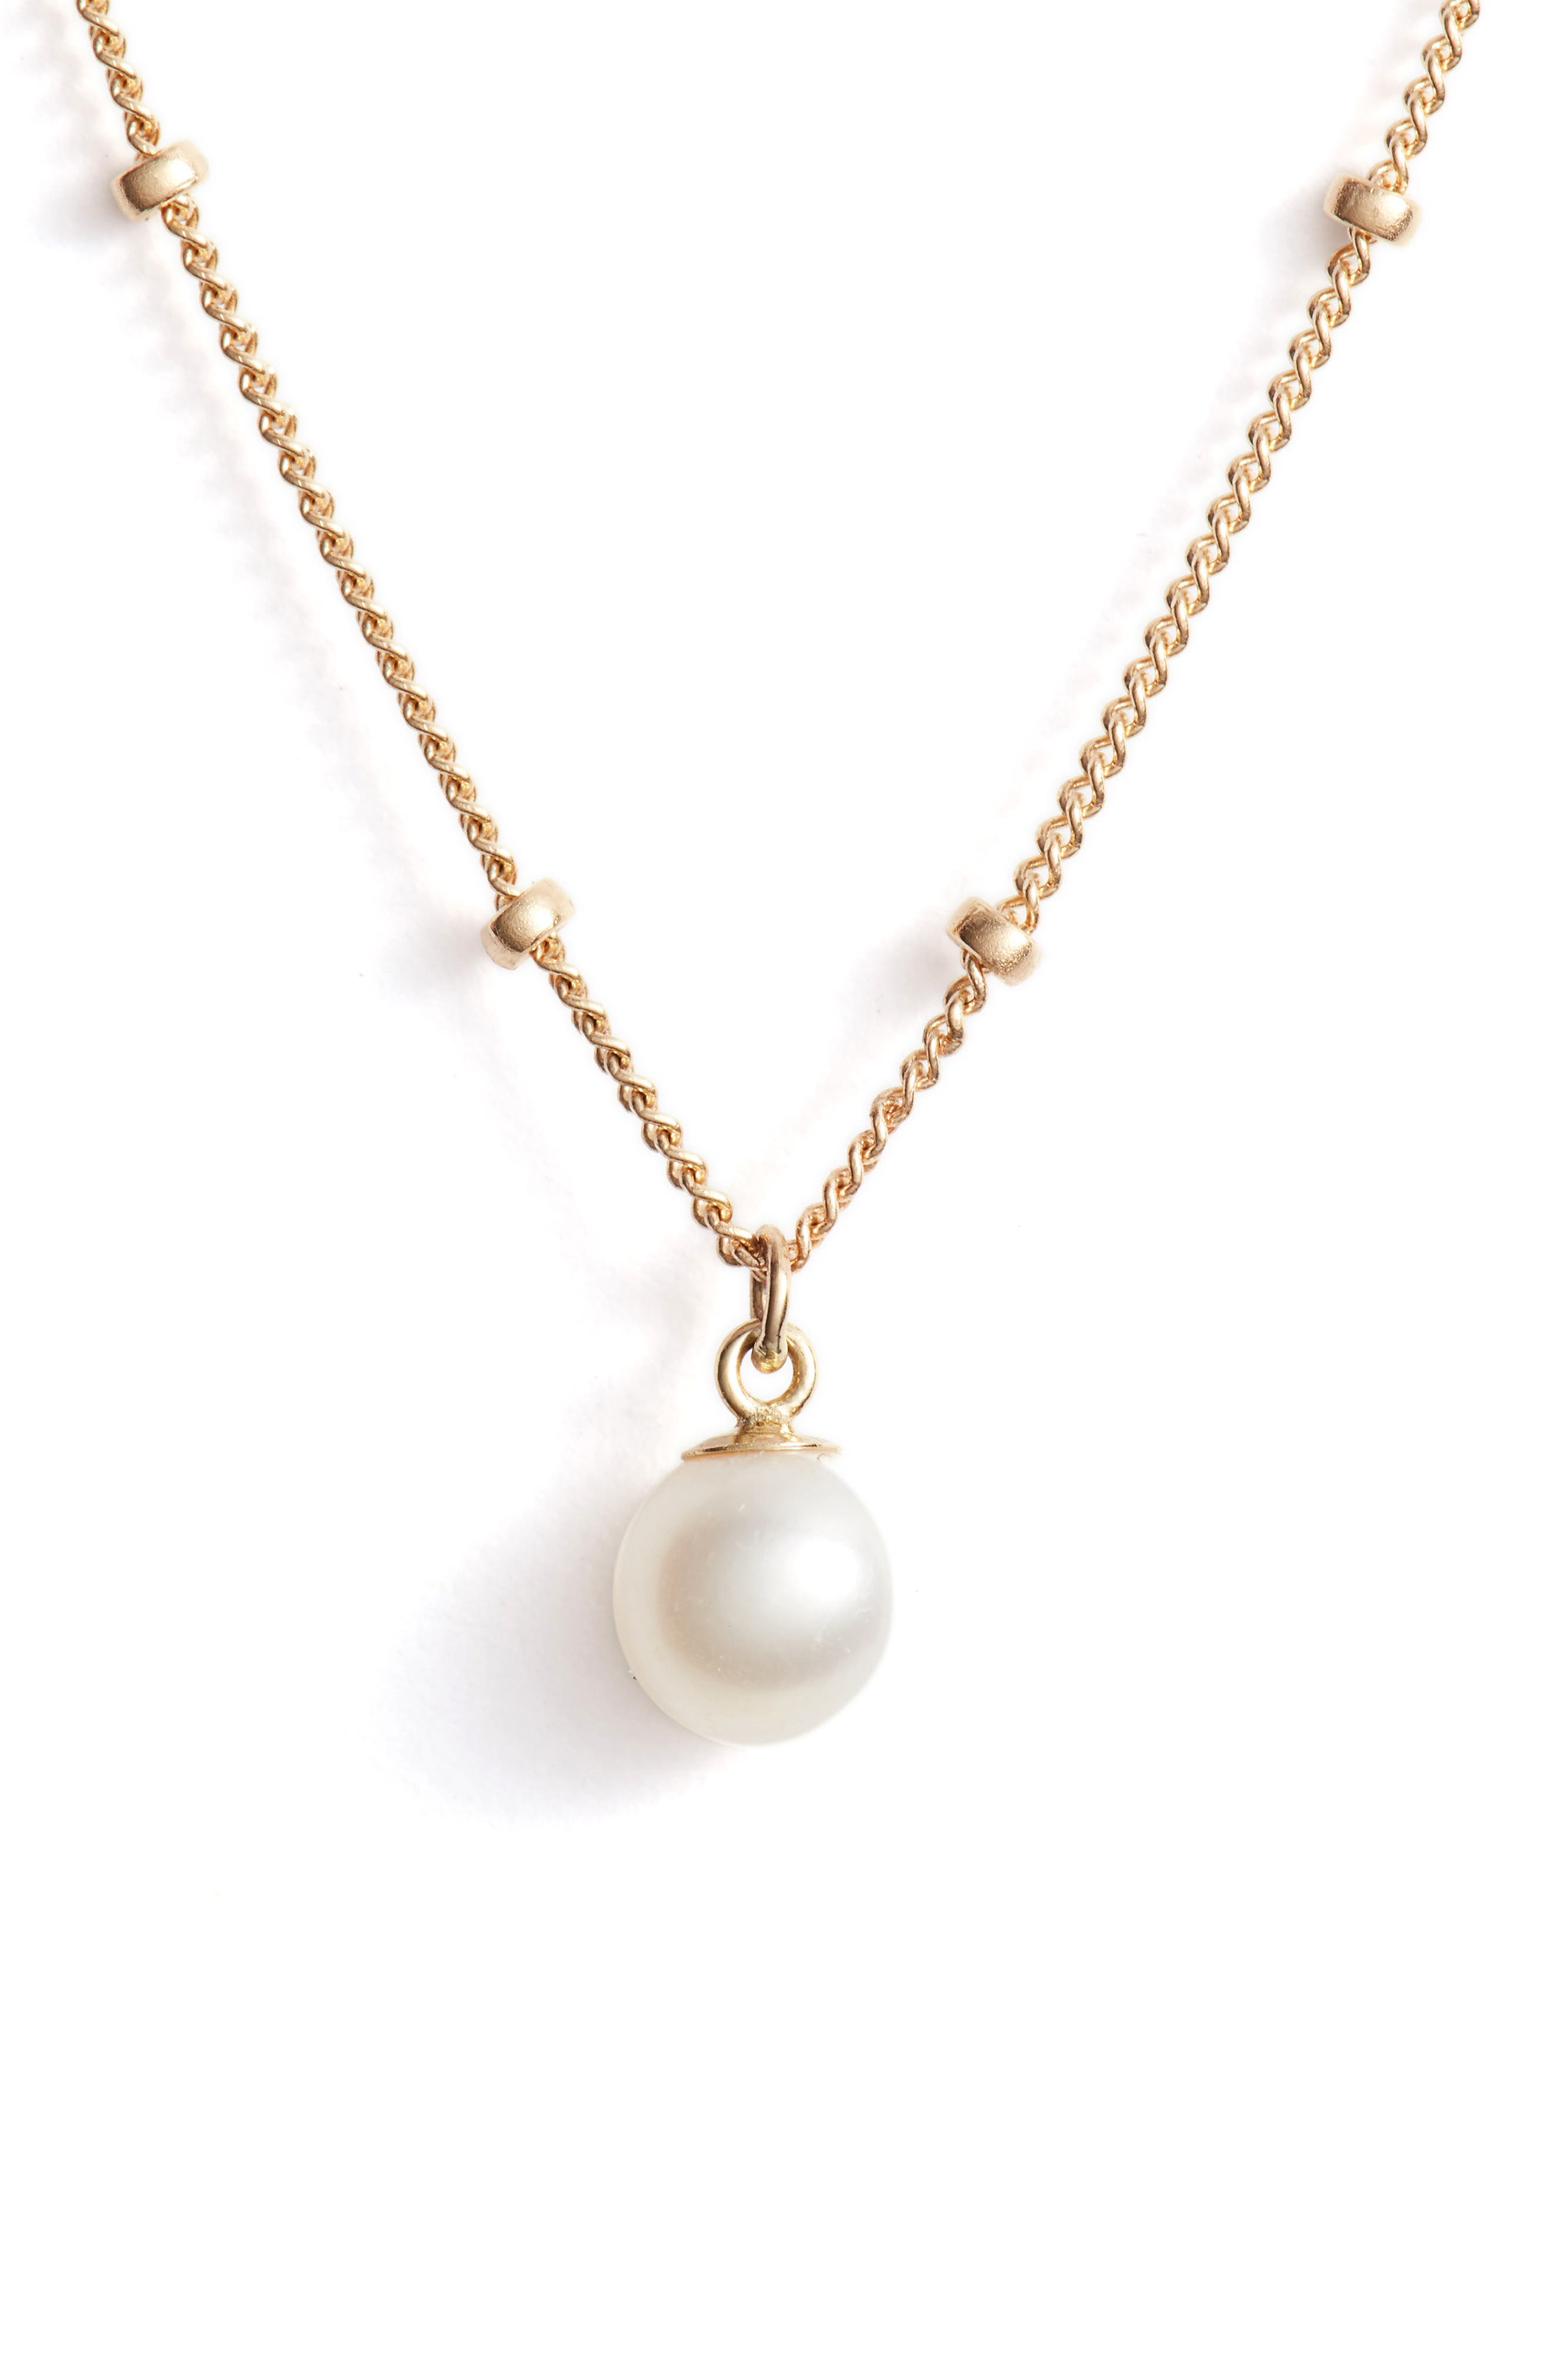 Baby Pearl Bead Choker Necklace,                         Main,                         color, YELLOW GOLD/ WHITE PEARL